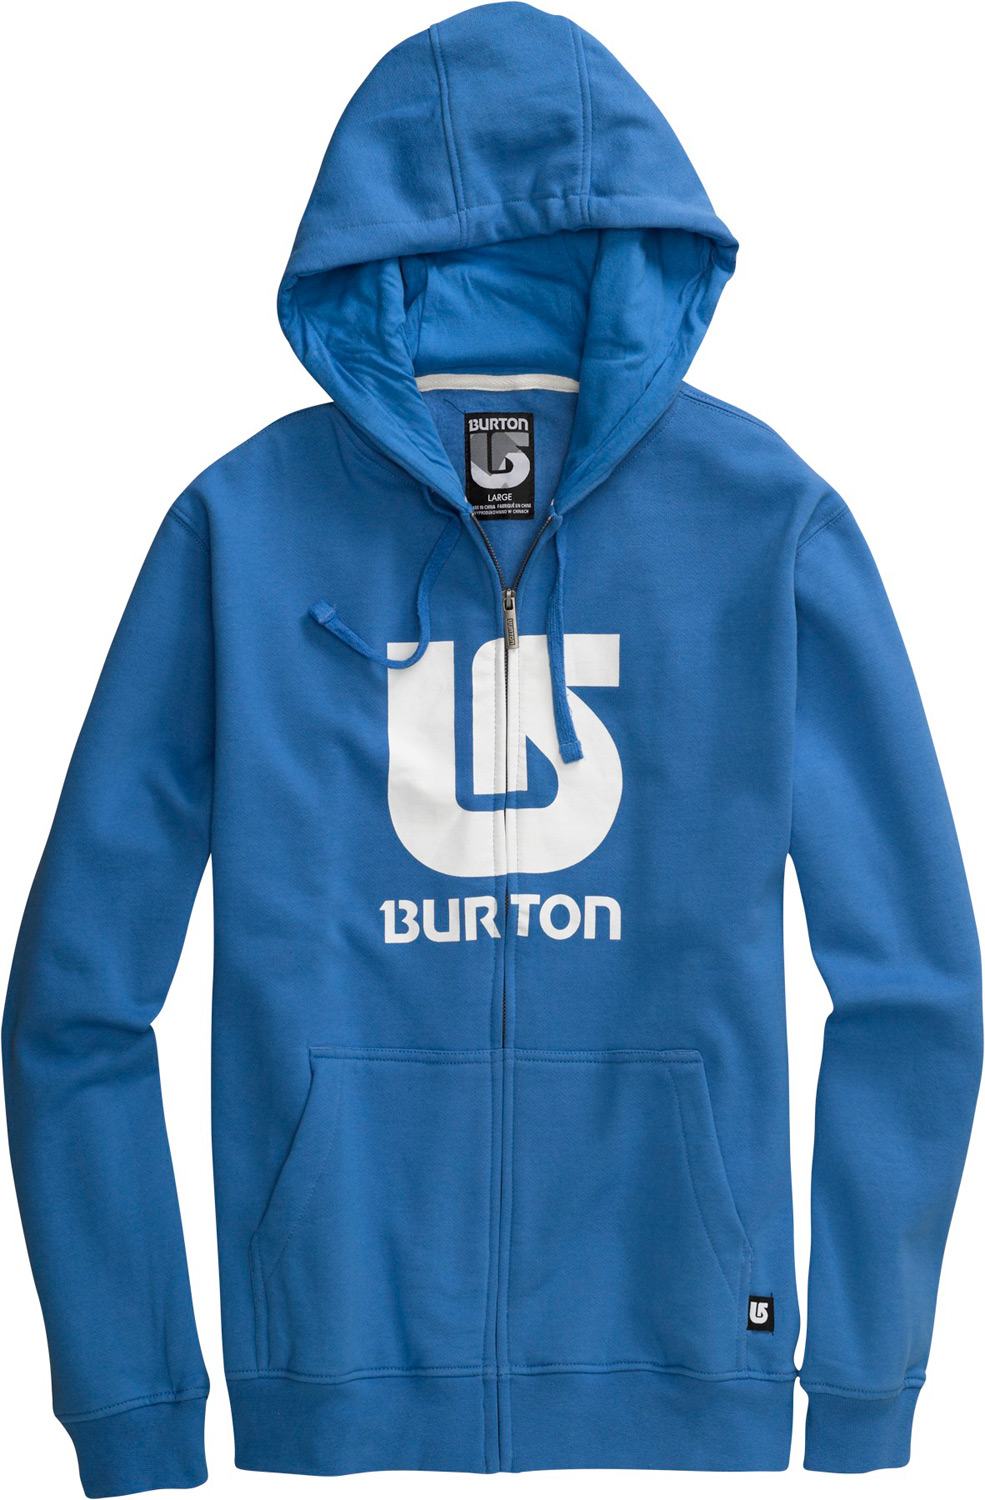 Snowboard Key Features of the Burton Logo Vertical Hoodie: 80% Cotton/20% Polyester, 300G Fleece Kangaroo Hand Warmer Pocket w/Interior Media Stash Signature Fit Hidden Side Seam Stash Pocket ProcessLogo on Chest S-XL - $36.95